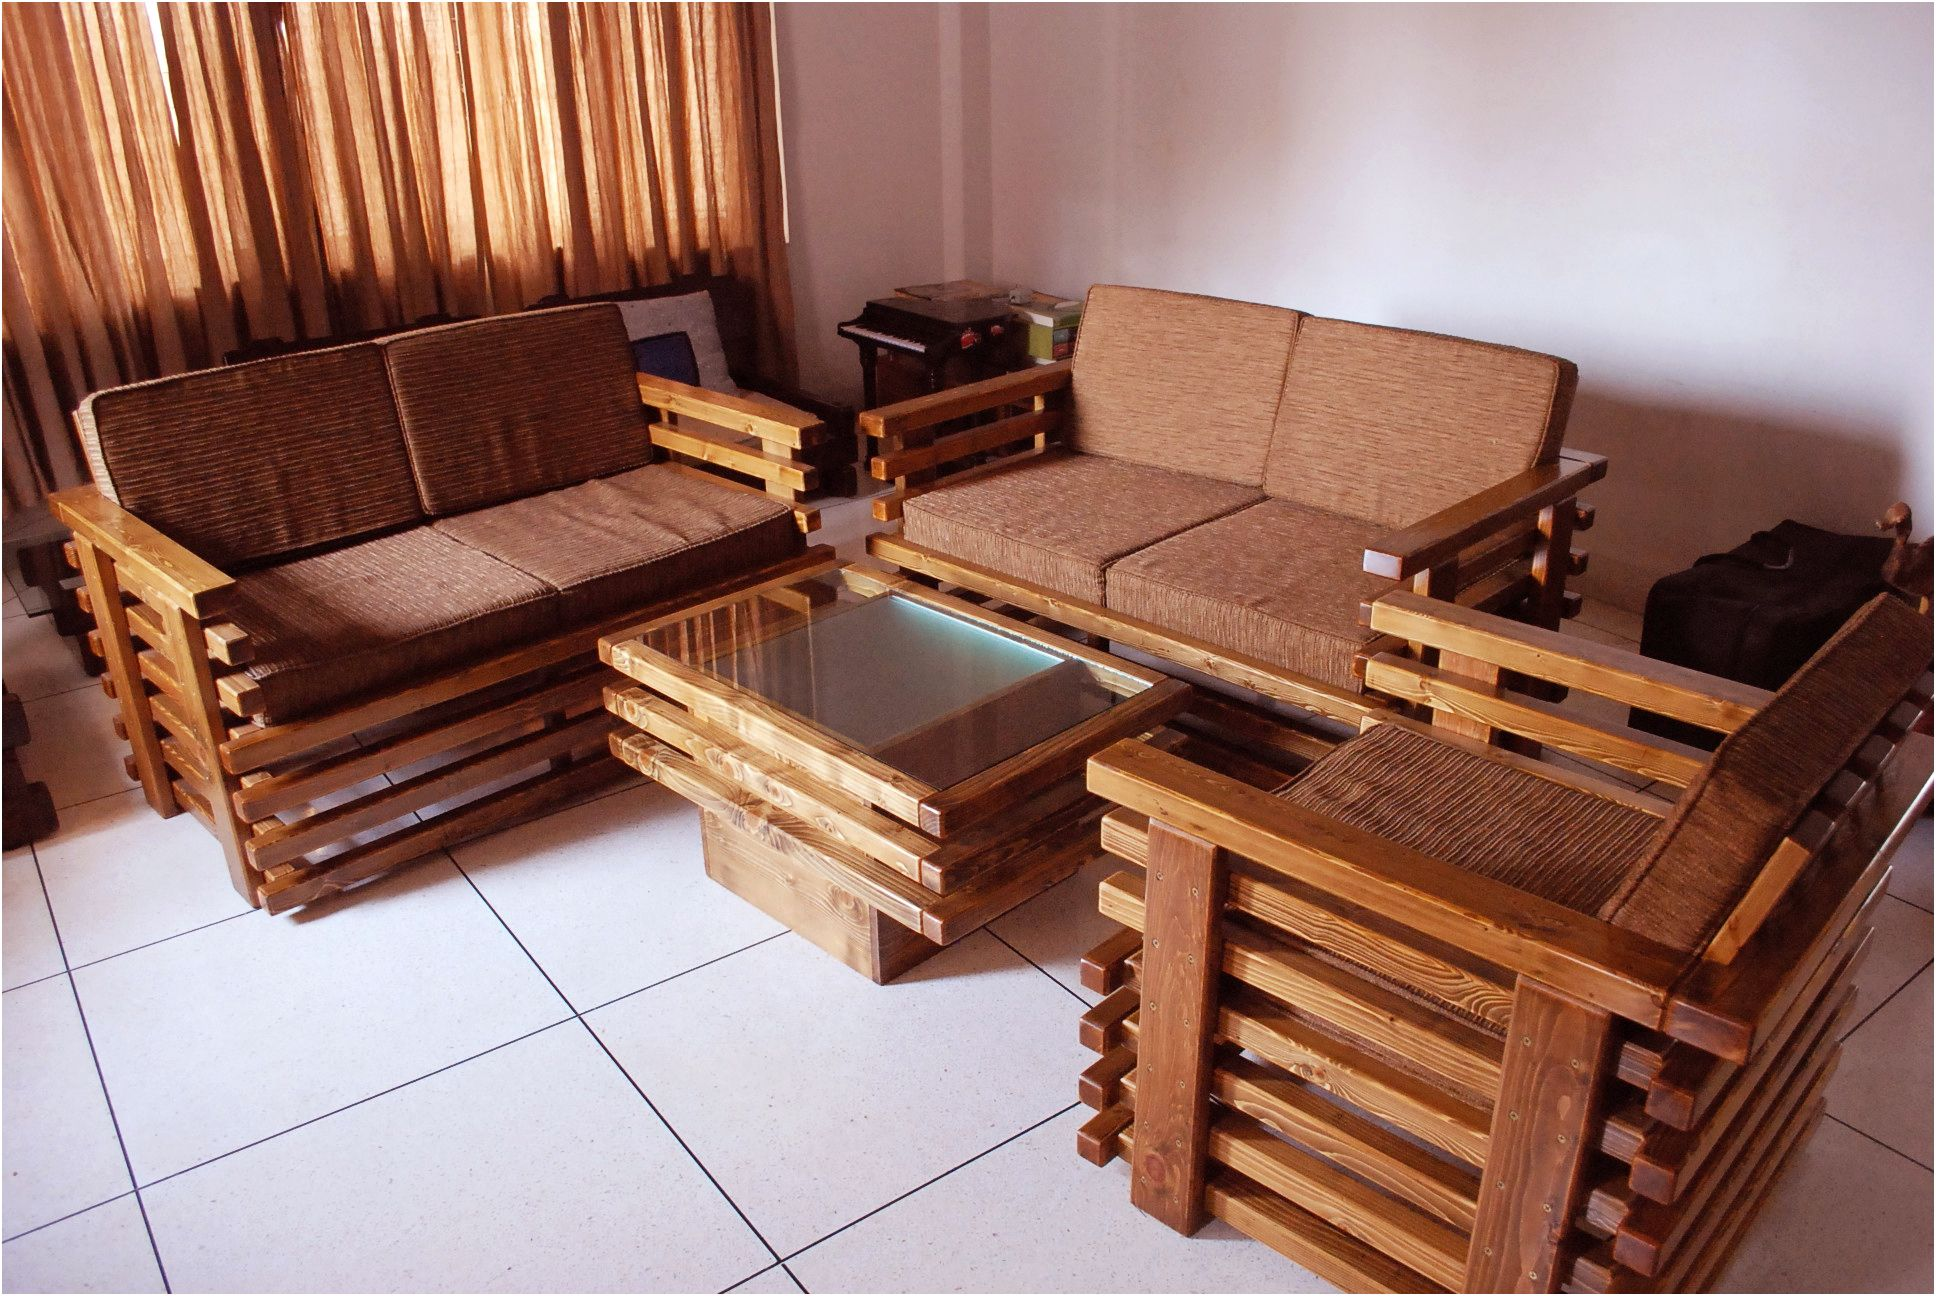 Sofa Set With Images Outdoor Furniture Sets Wooden Sofa Sofa